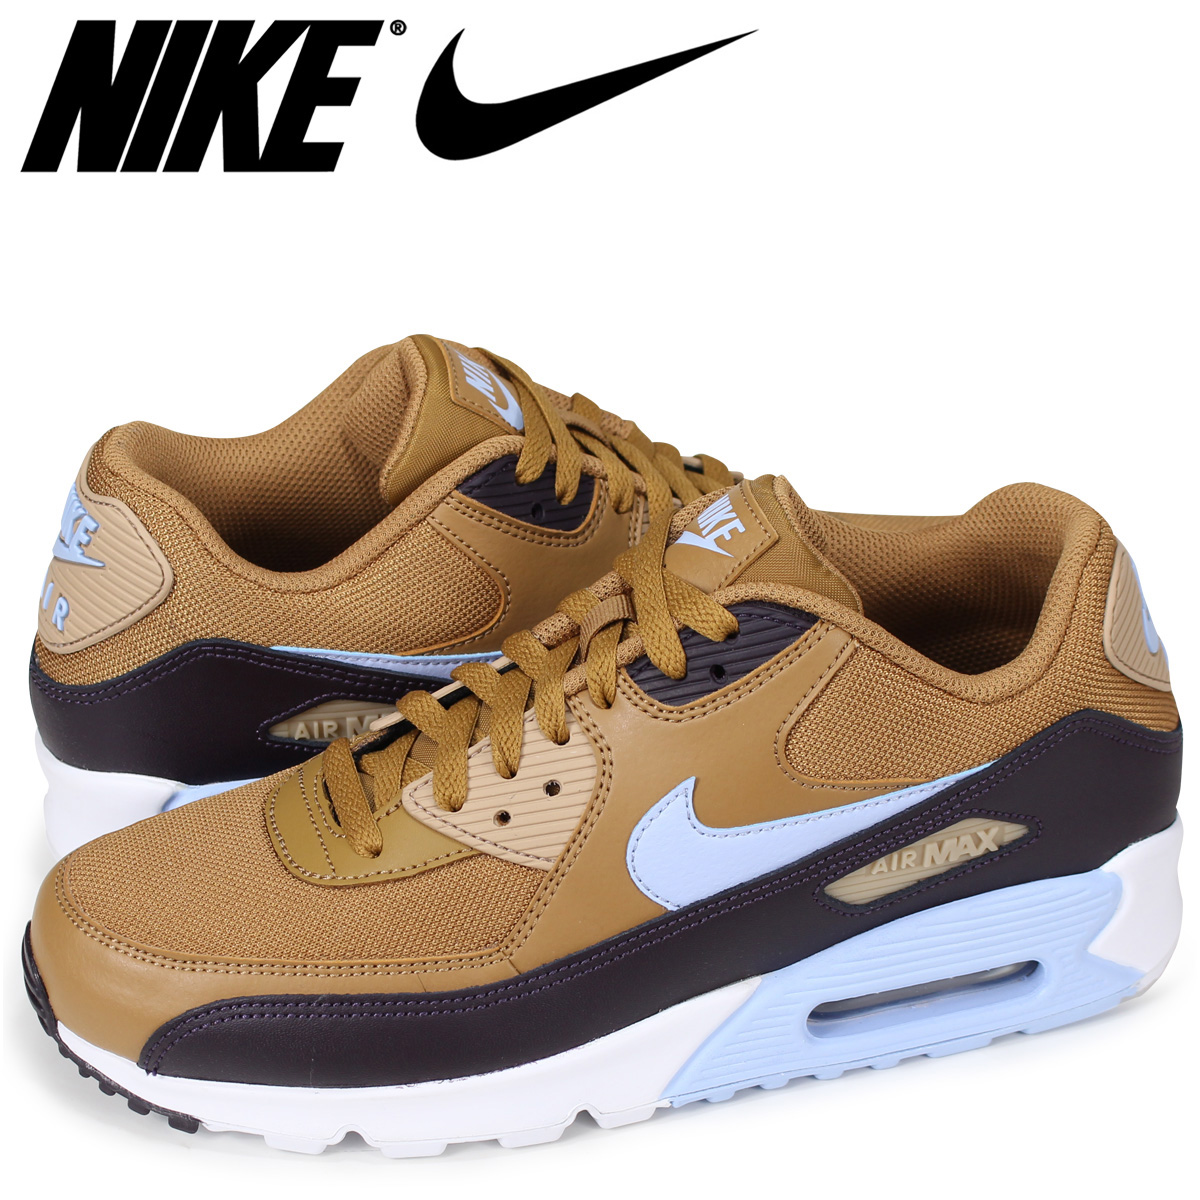 NIKE AIR MAX 90 ESSENTIAL Kie Ney AMAX 90 essential sneakers men AJ1285 202 brown